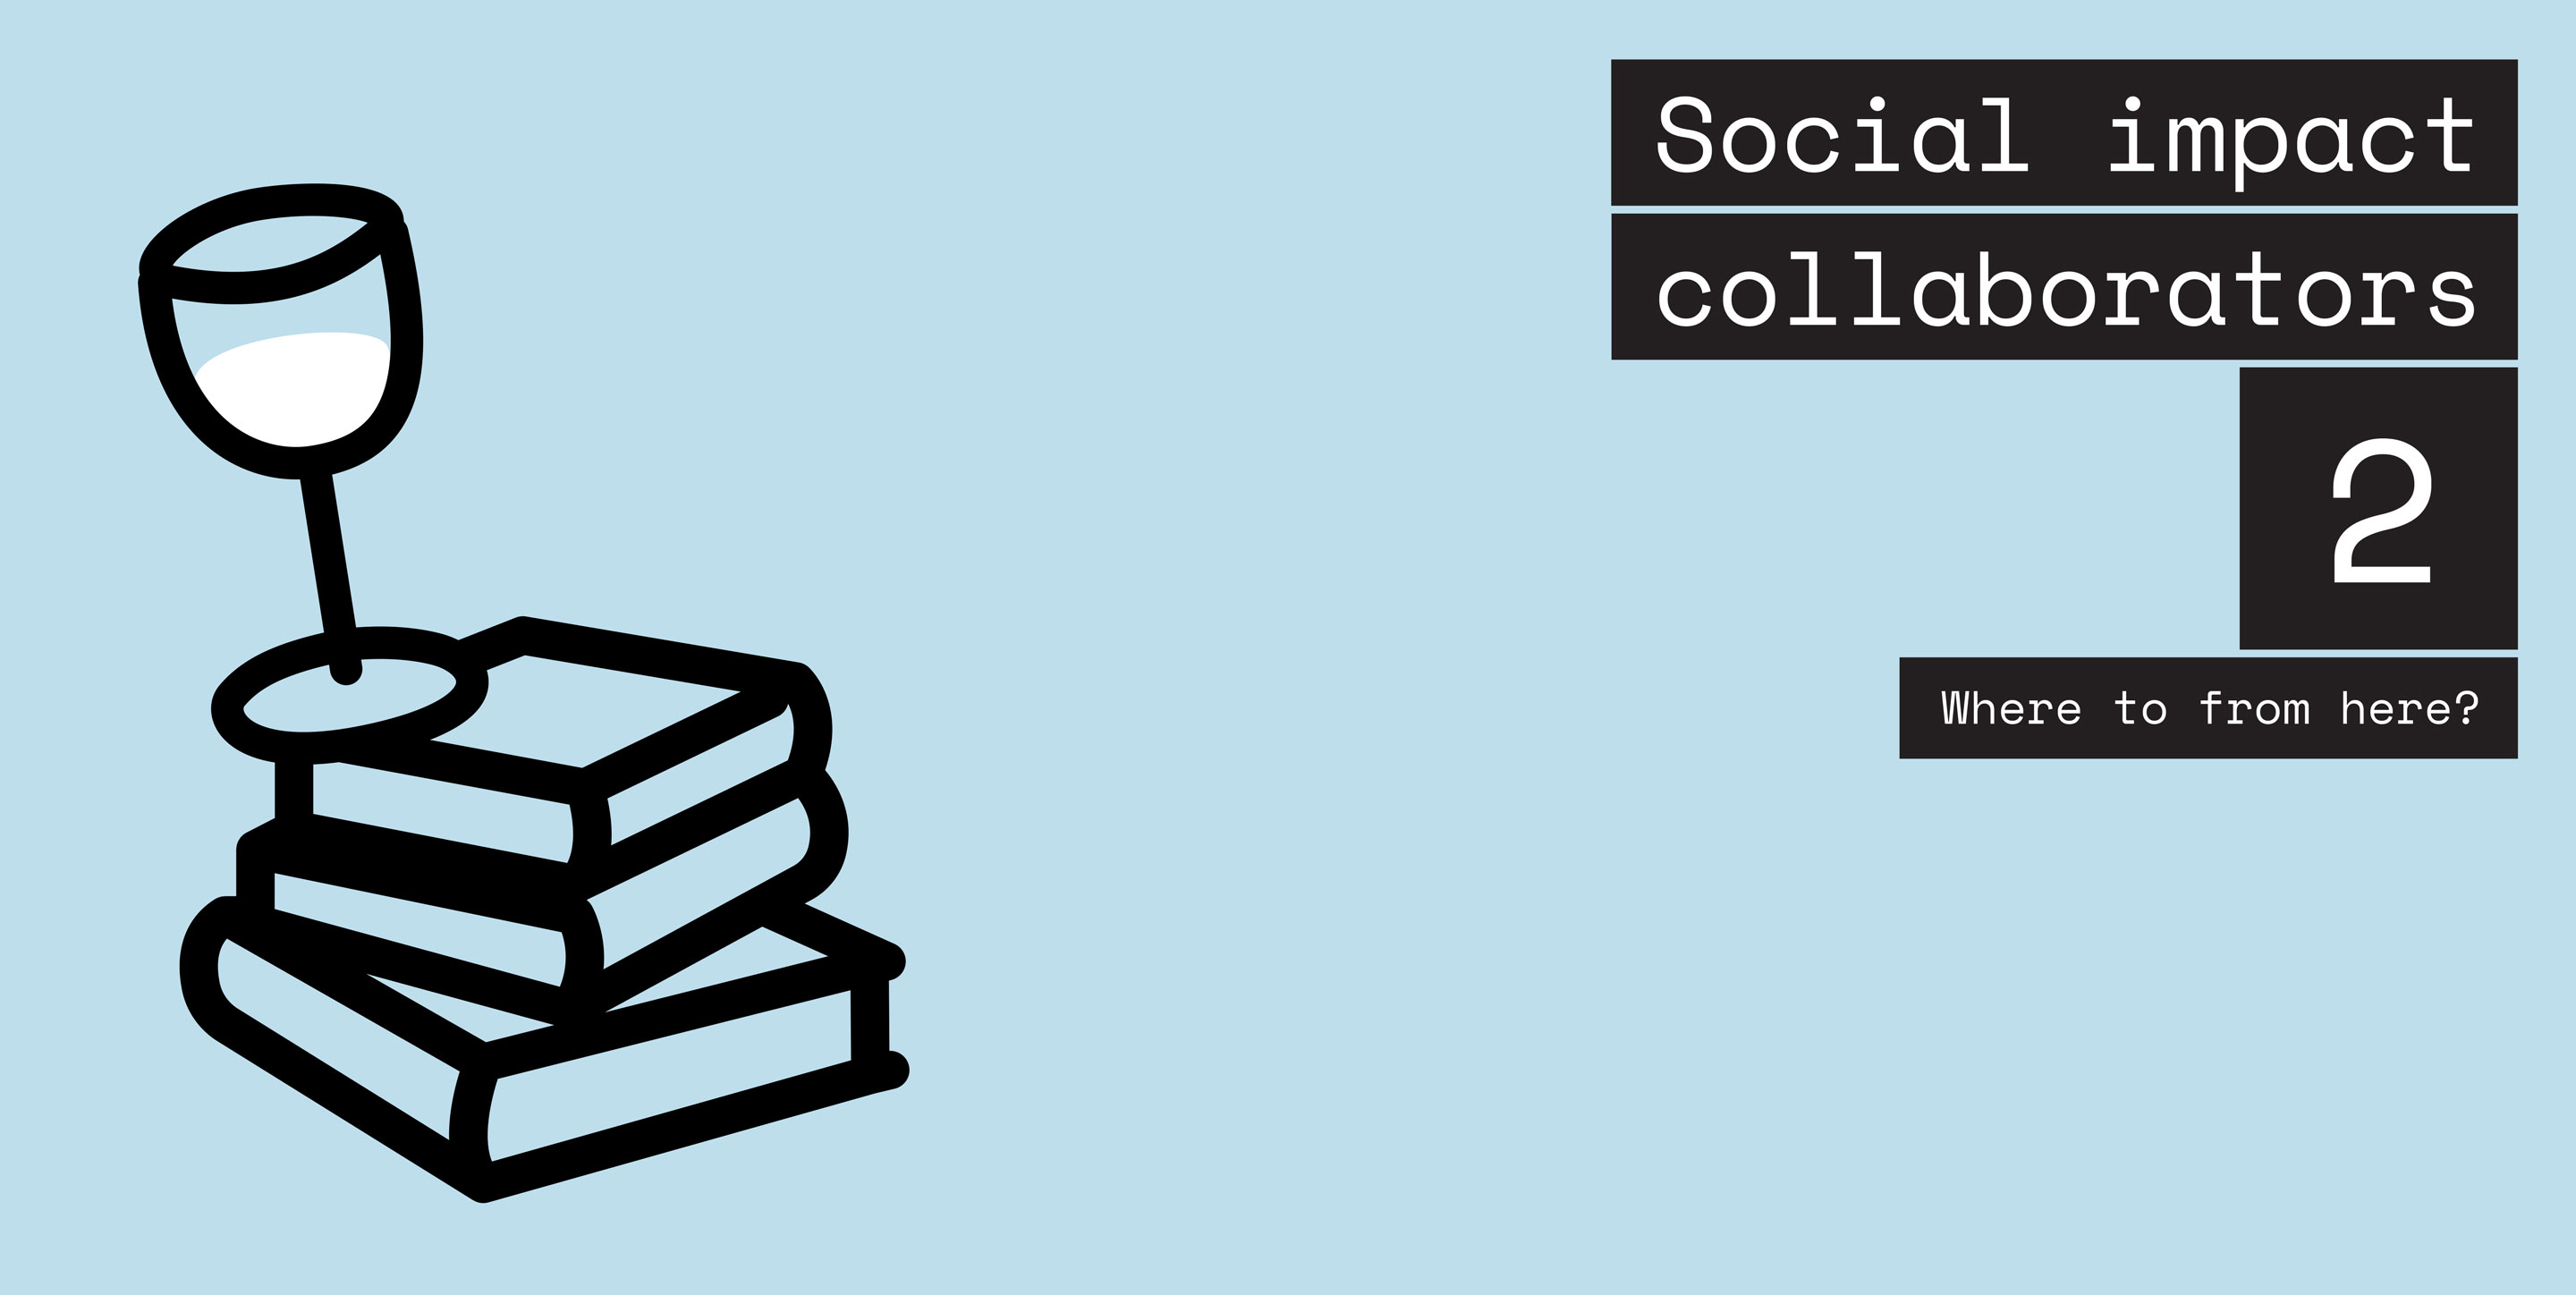 Social impact collaborators #2: Where to from here?